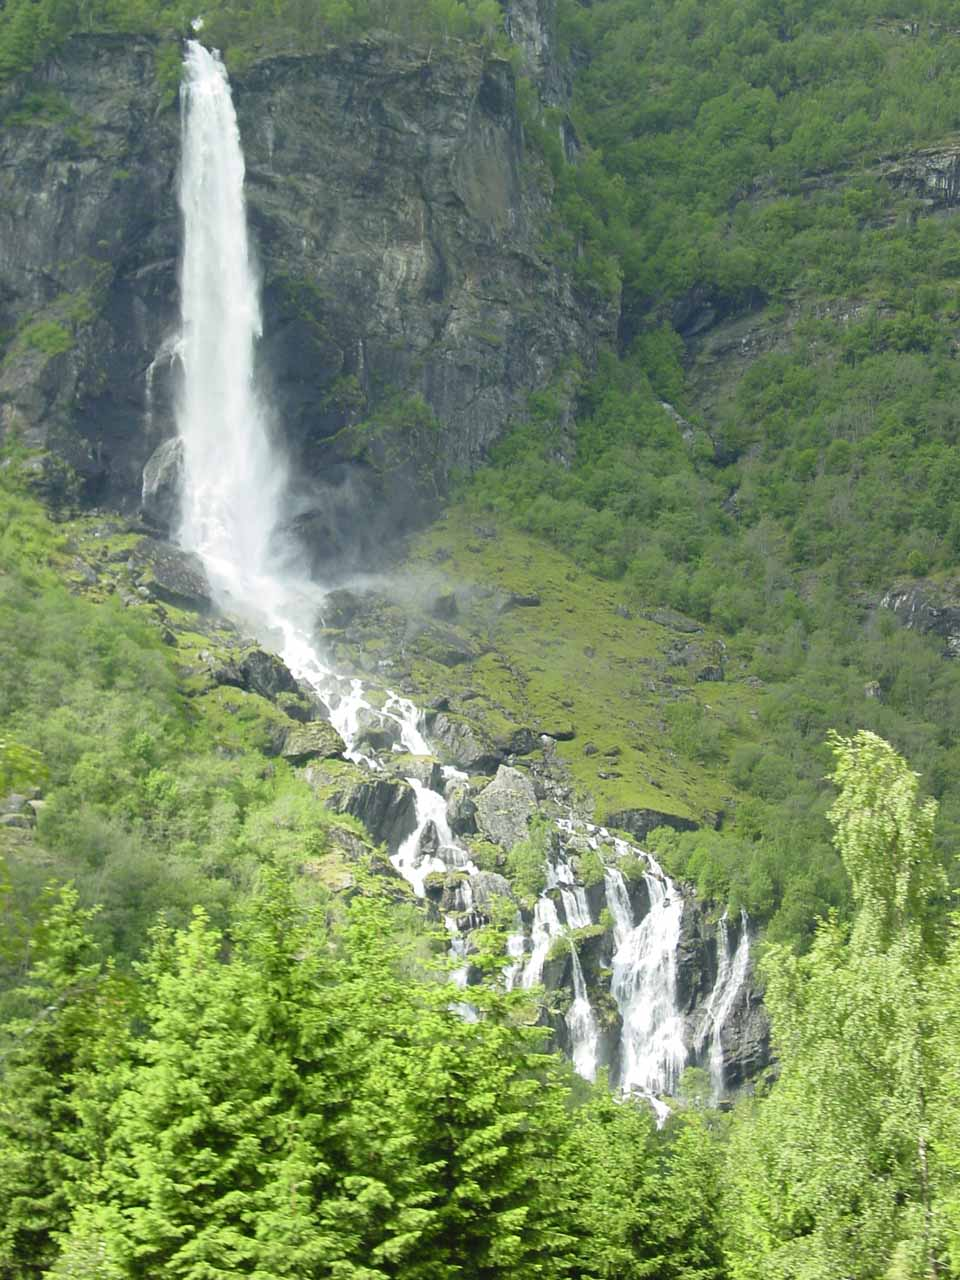 Closer look at Rjoandefossen as we were headed back to Flam